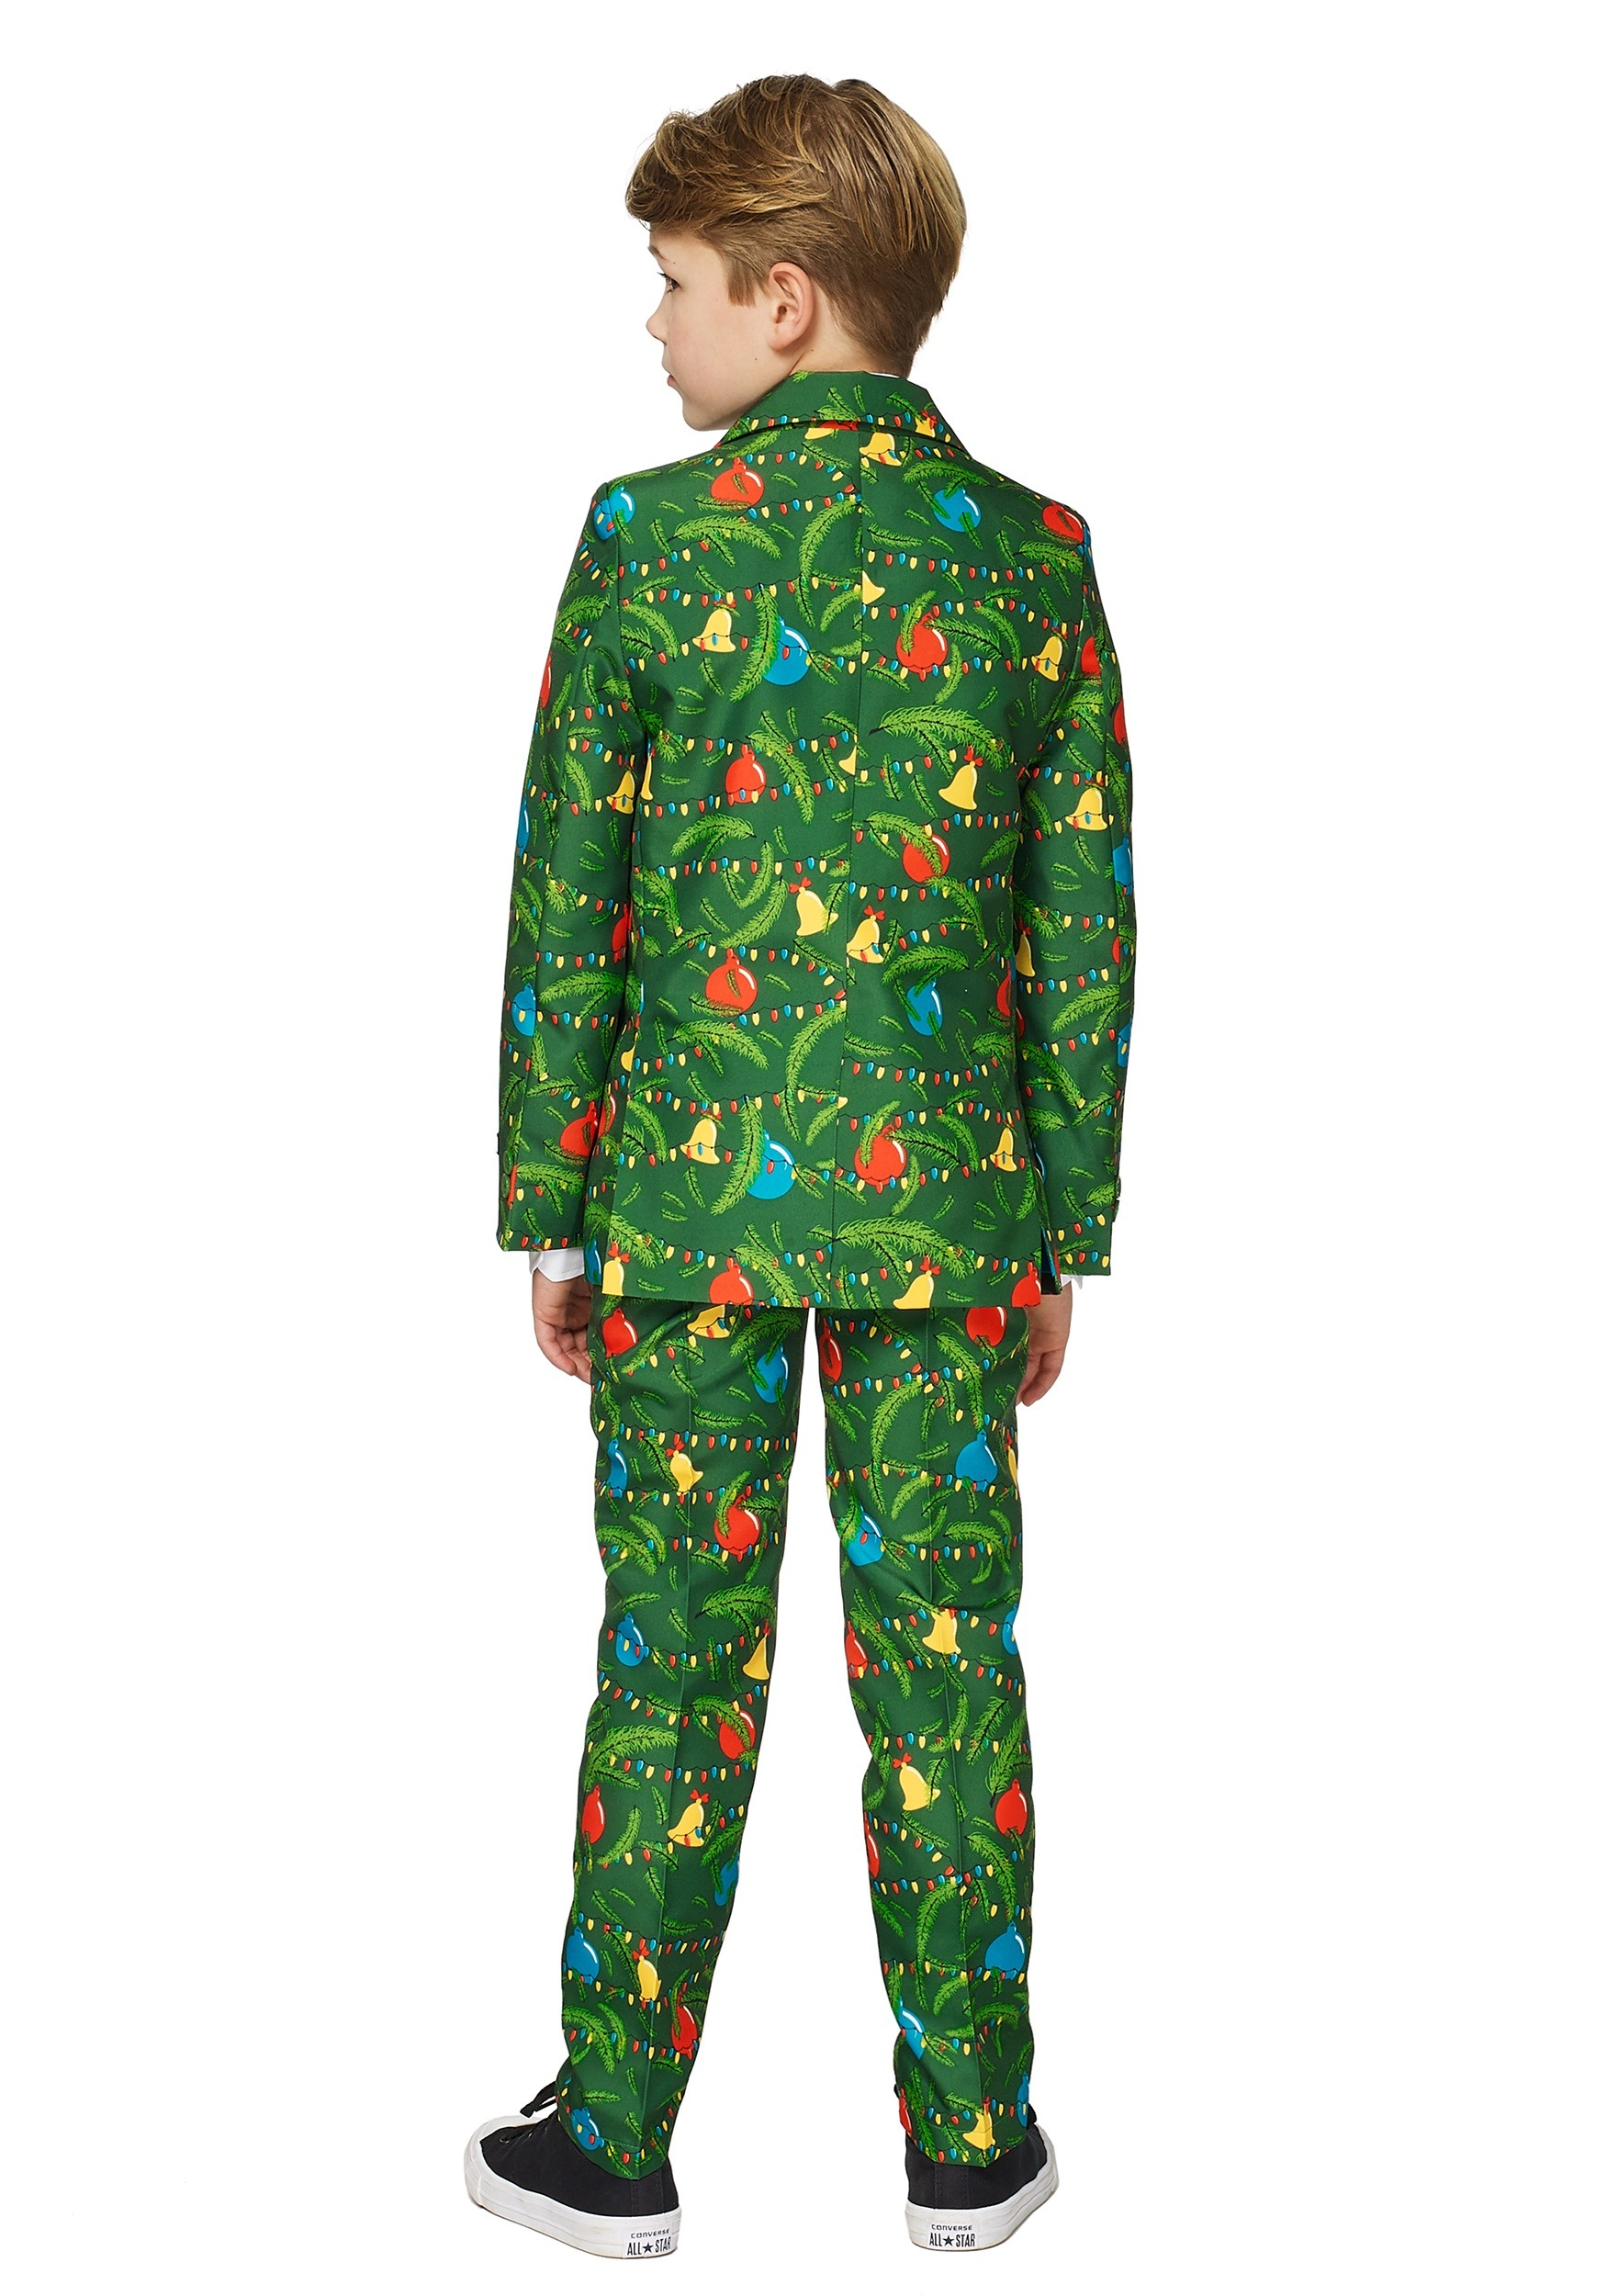 boys green christmas tree suitmiester boys green christmas tree suitmiester